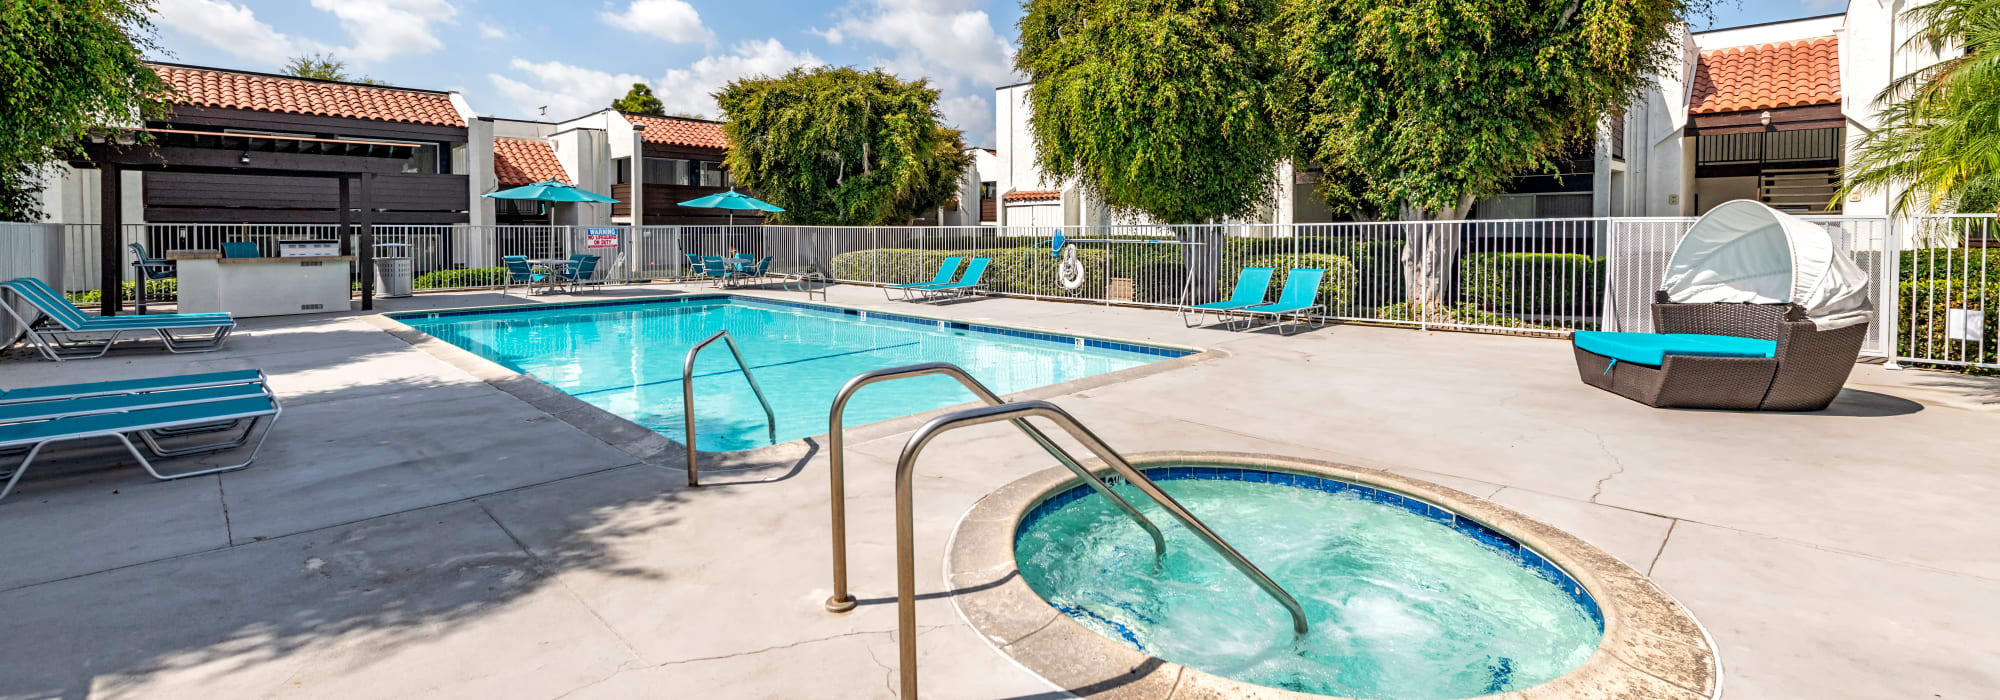 Virtual tours of Kendallwood Apartments in Whittier, California